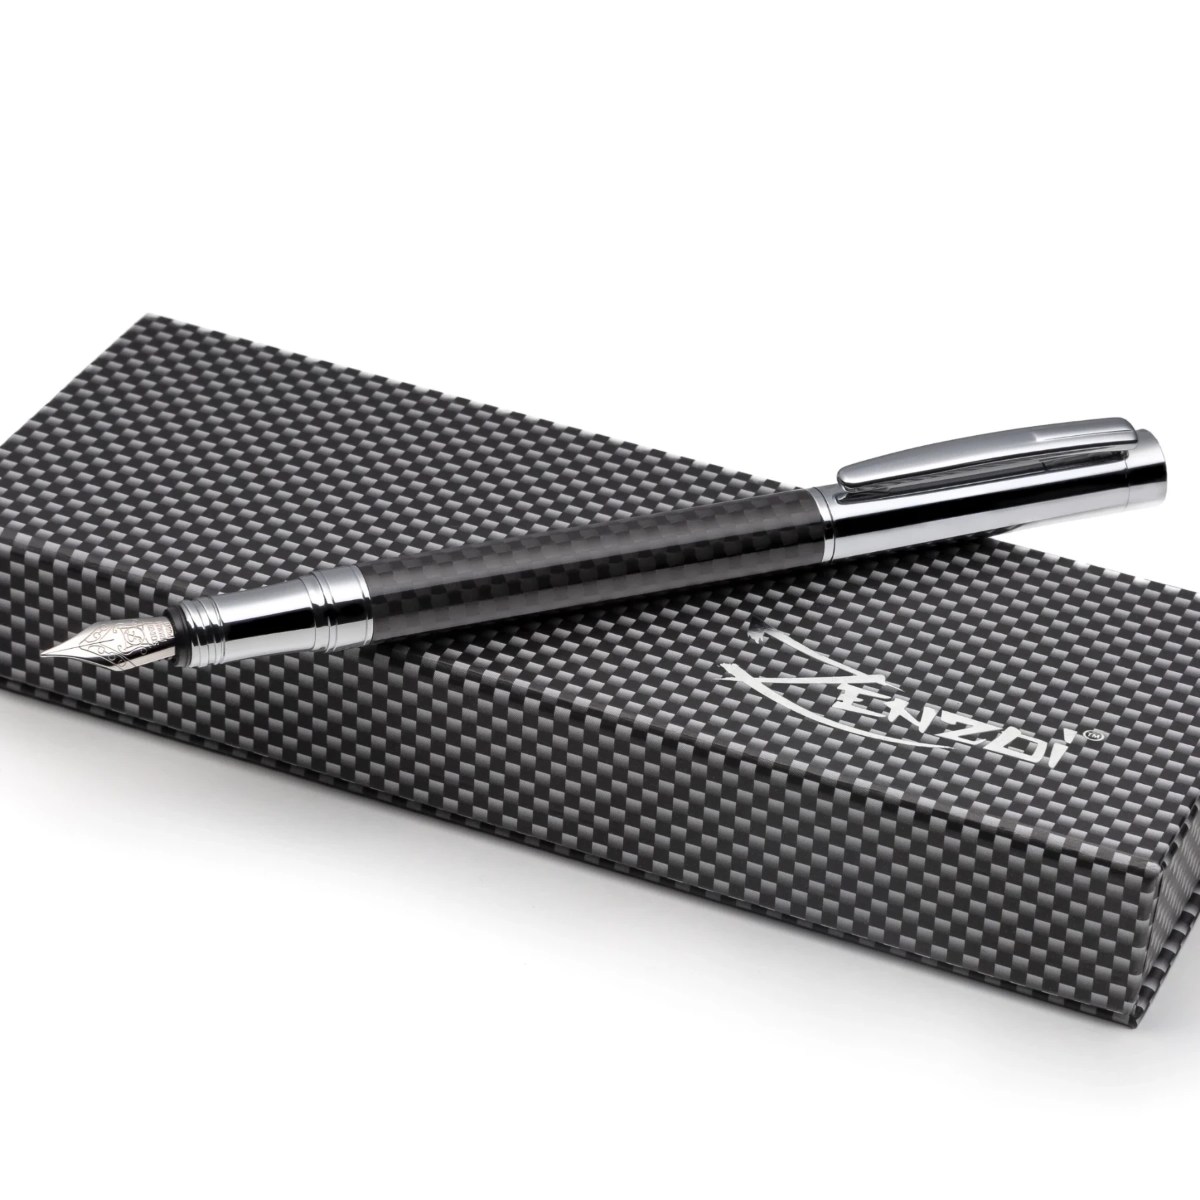 Carbon Fiber Fountain Pen Set W/ German Schmidt Fine Nib & Gift Pen Set